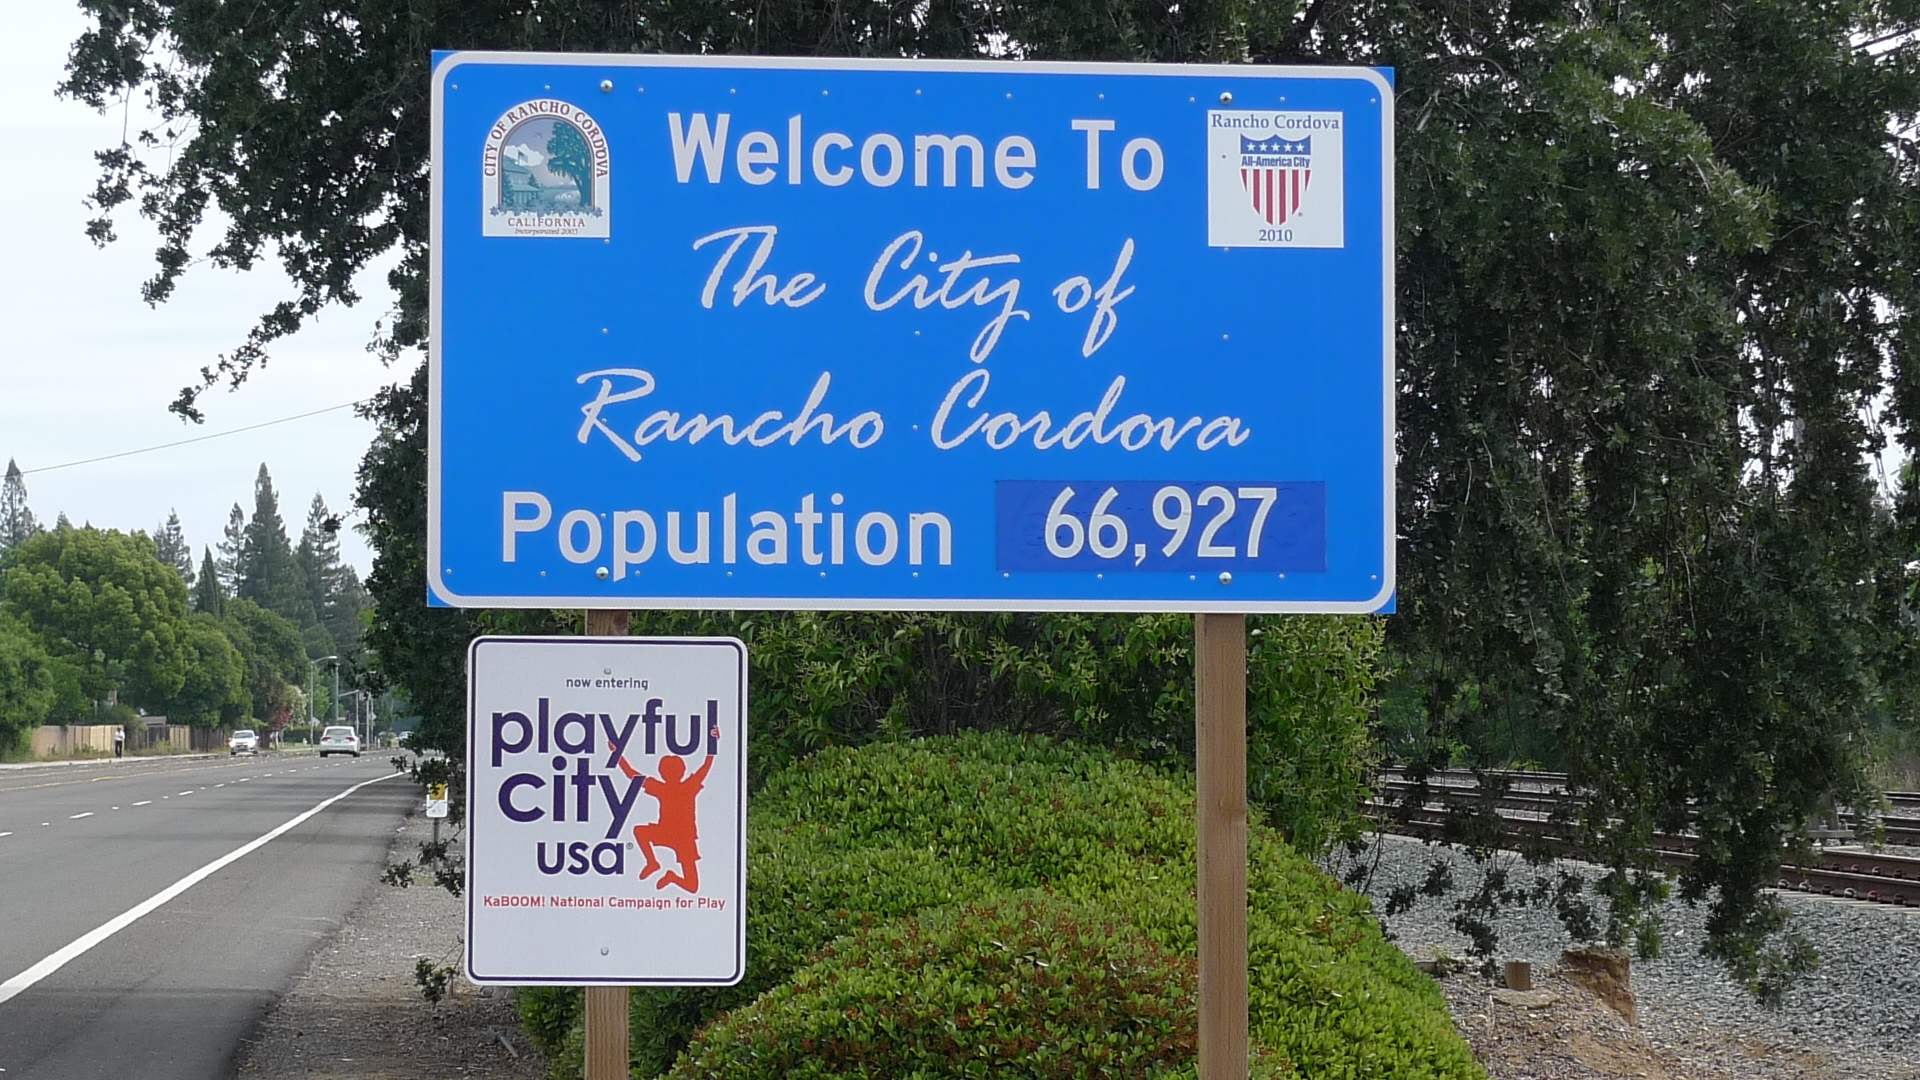 The City of Rancho Cordova, CA by area listing mls agent broker